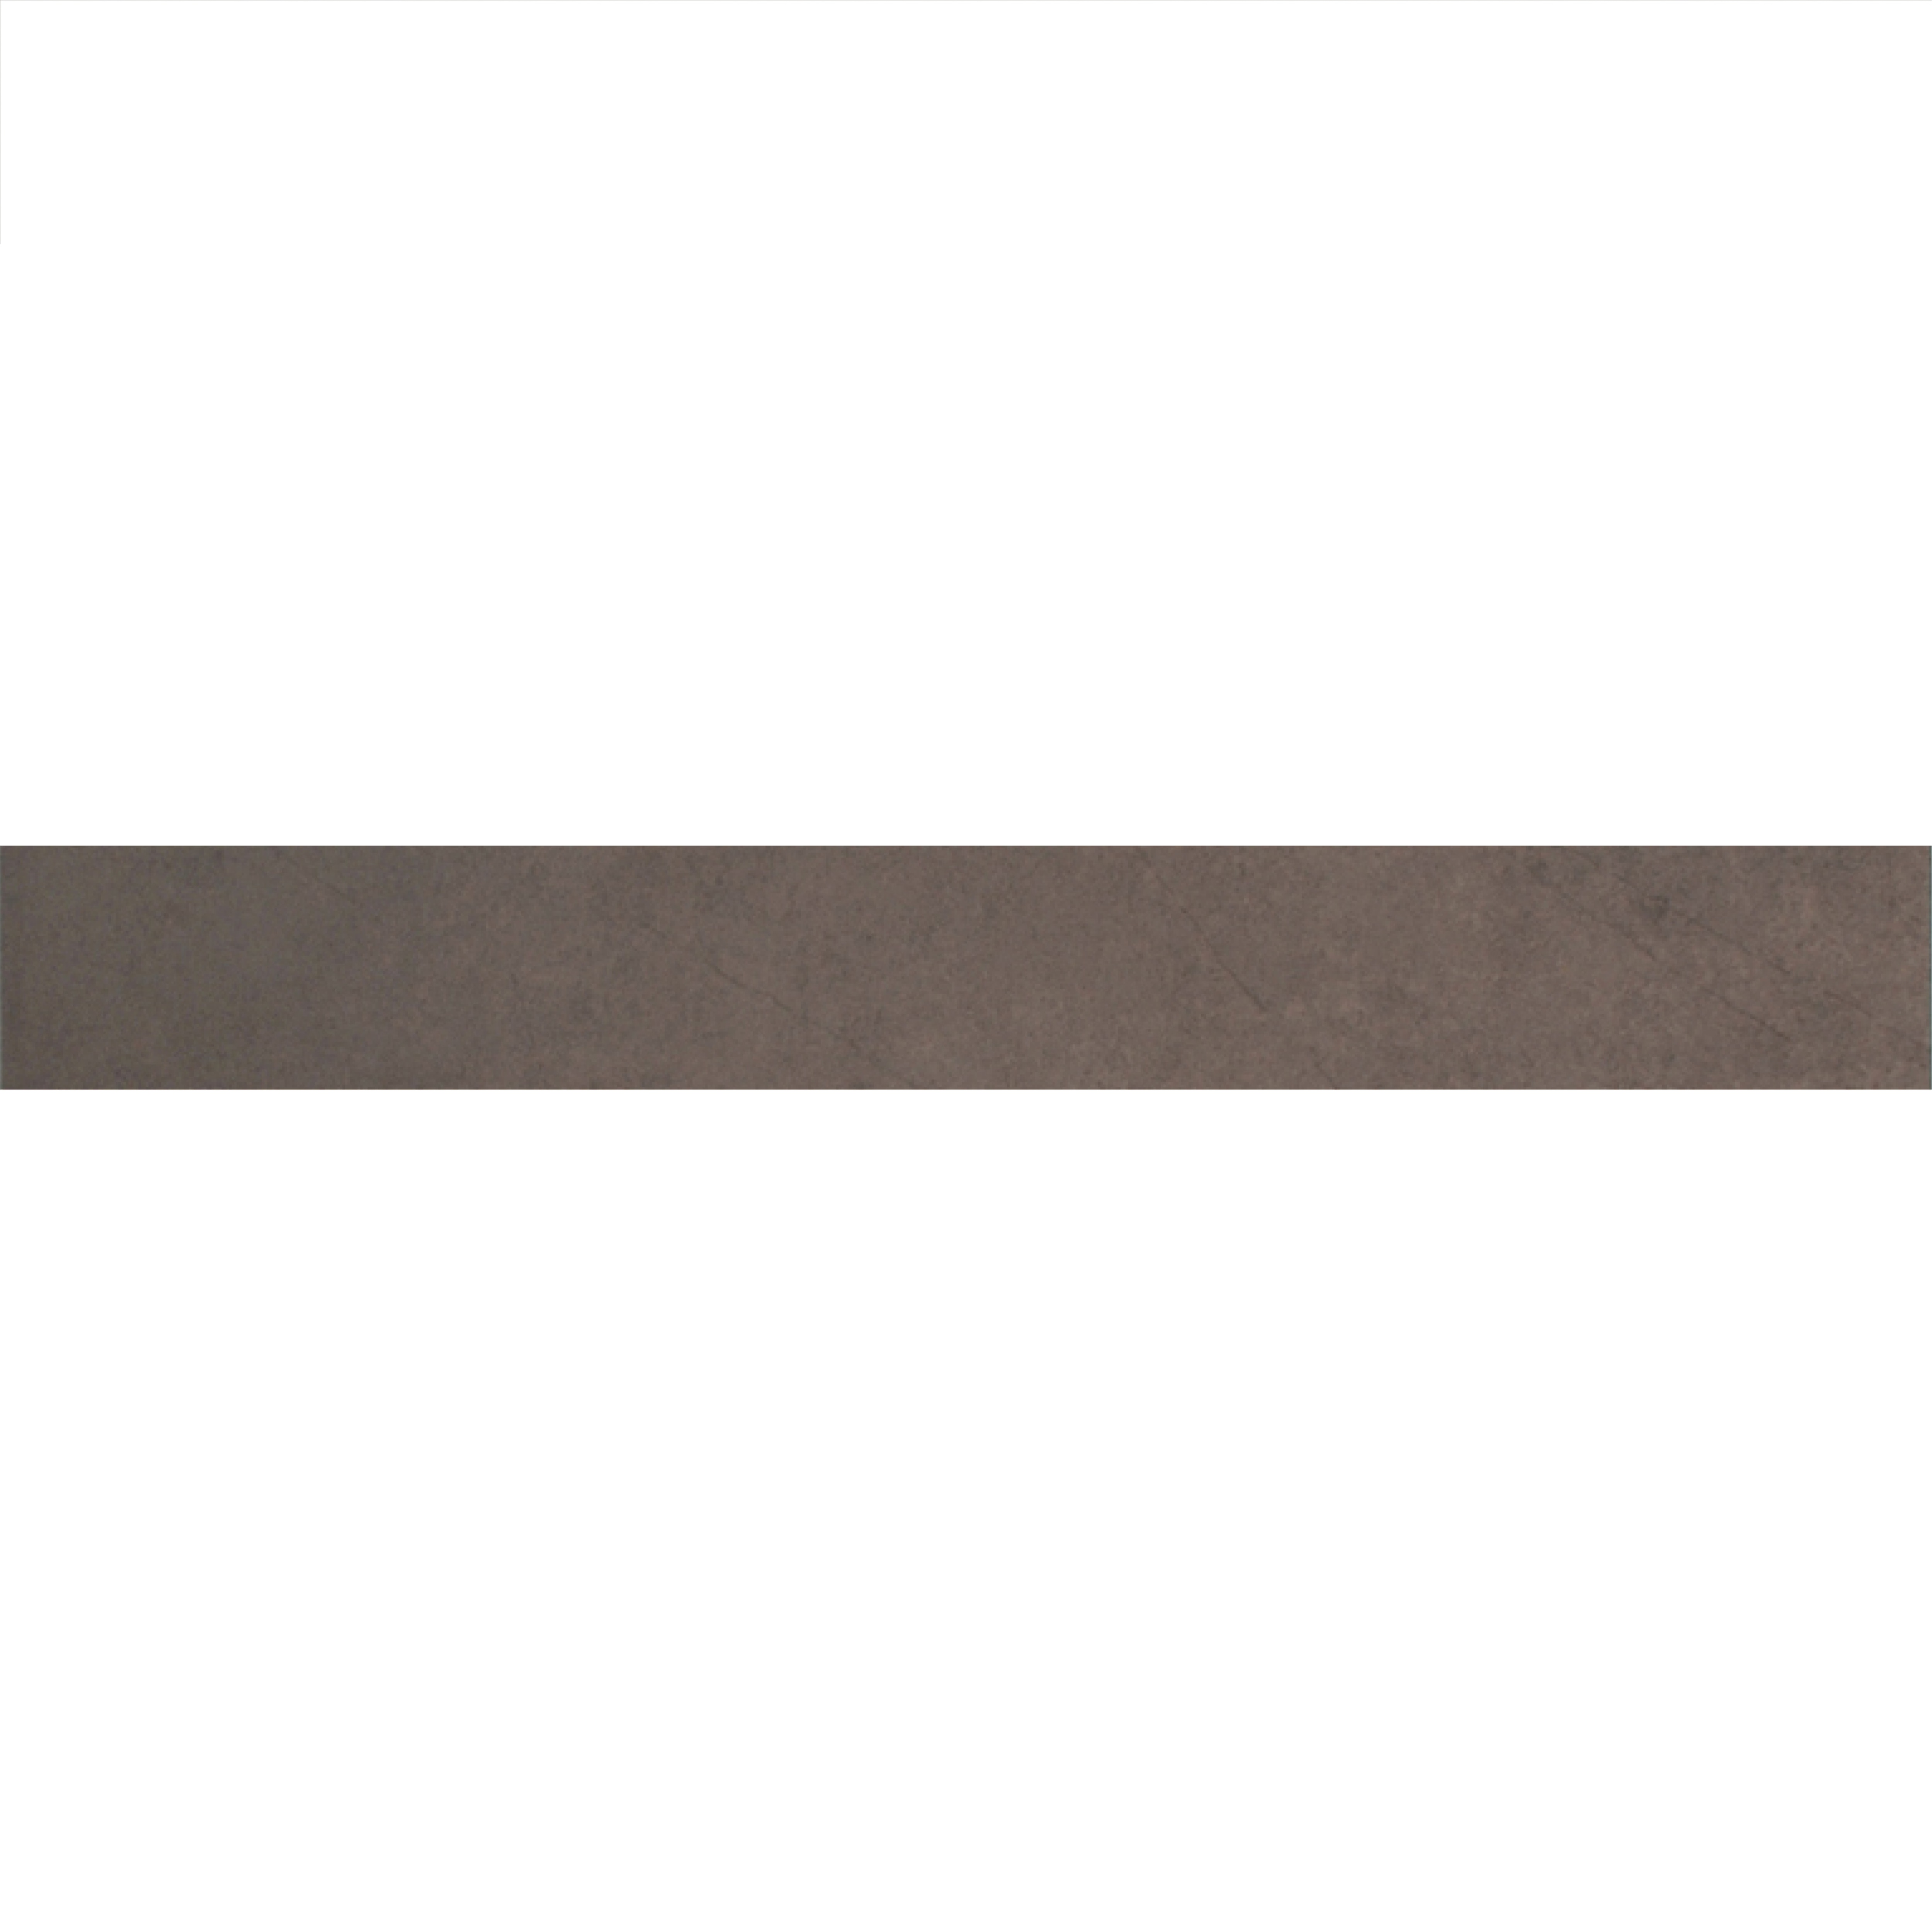 Arredo Klinker Quartz Brown 75x600 mm